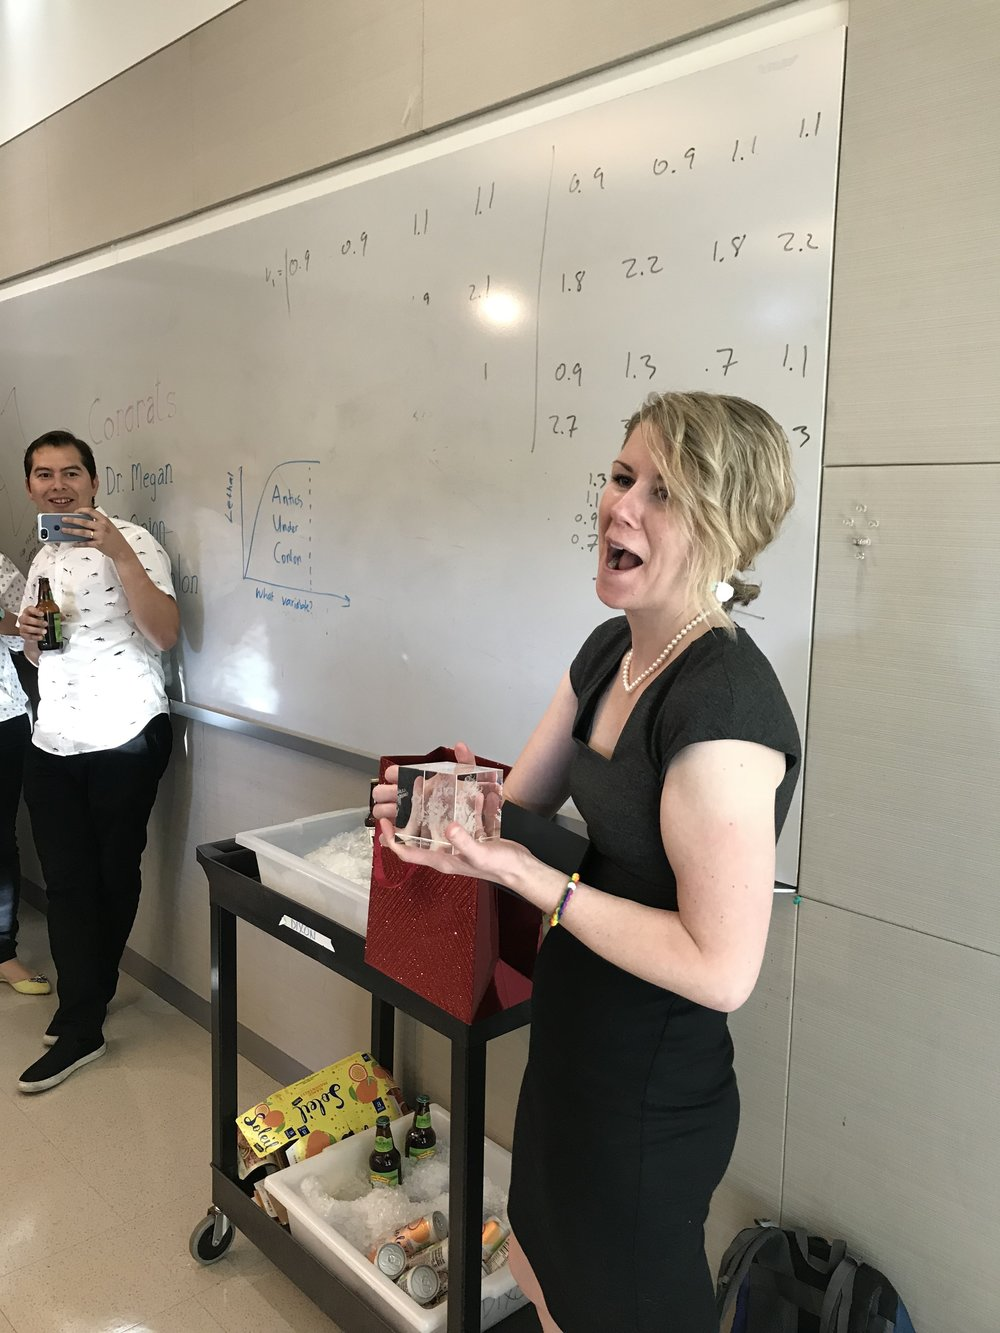 Megan celebrates completing her oral Ph.D. thesis defense! Holding her new power crystal, a gift from the lab. - 13 September 18